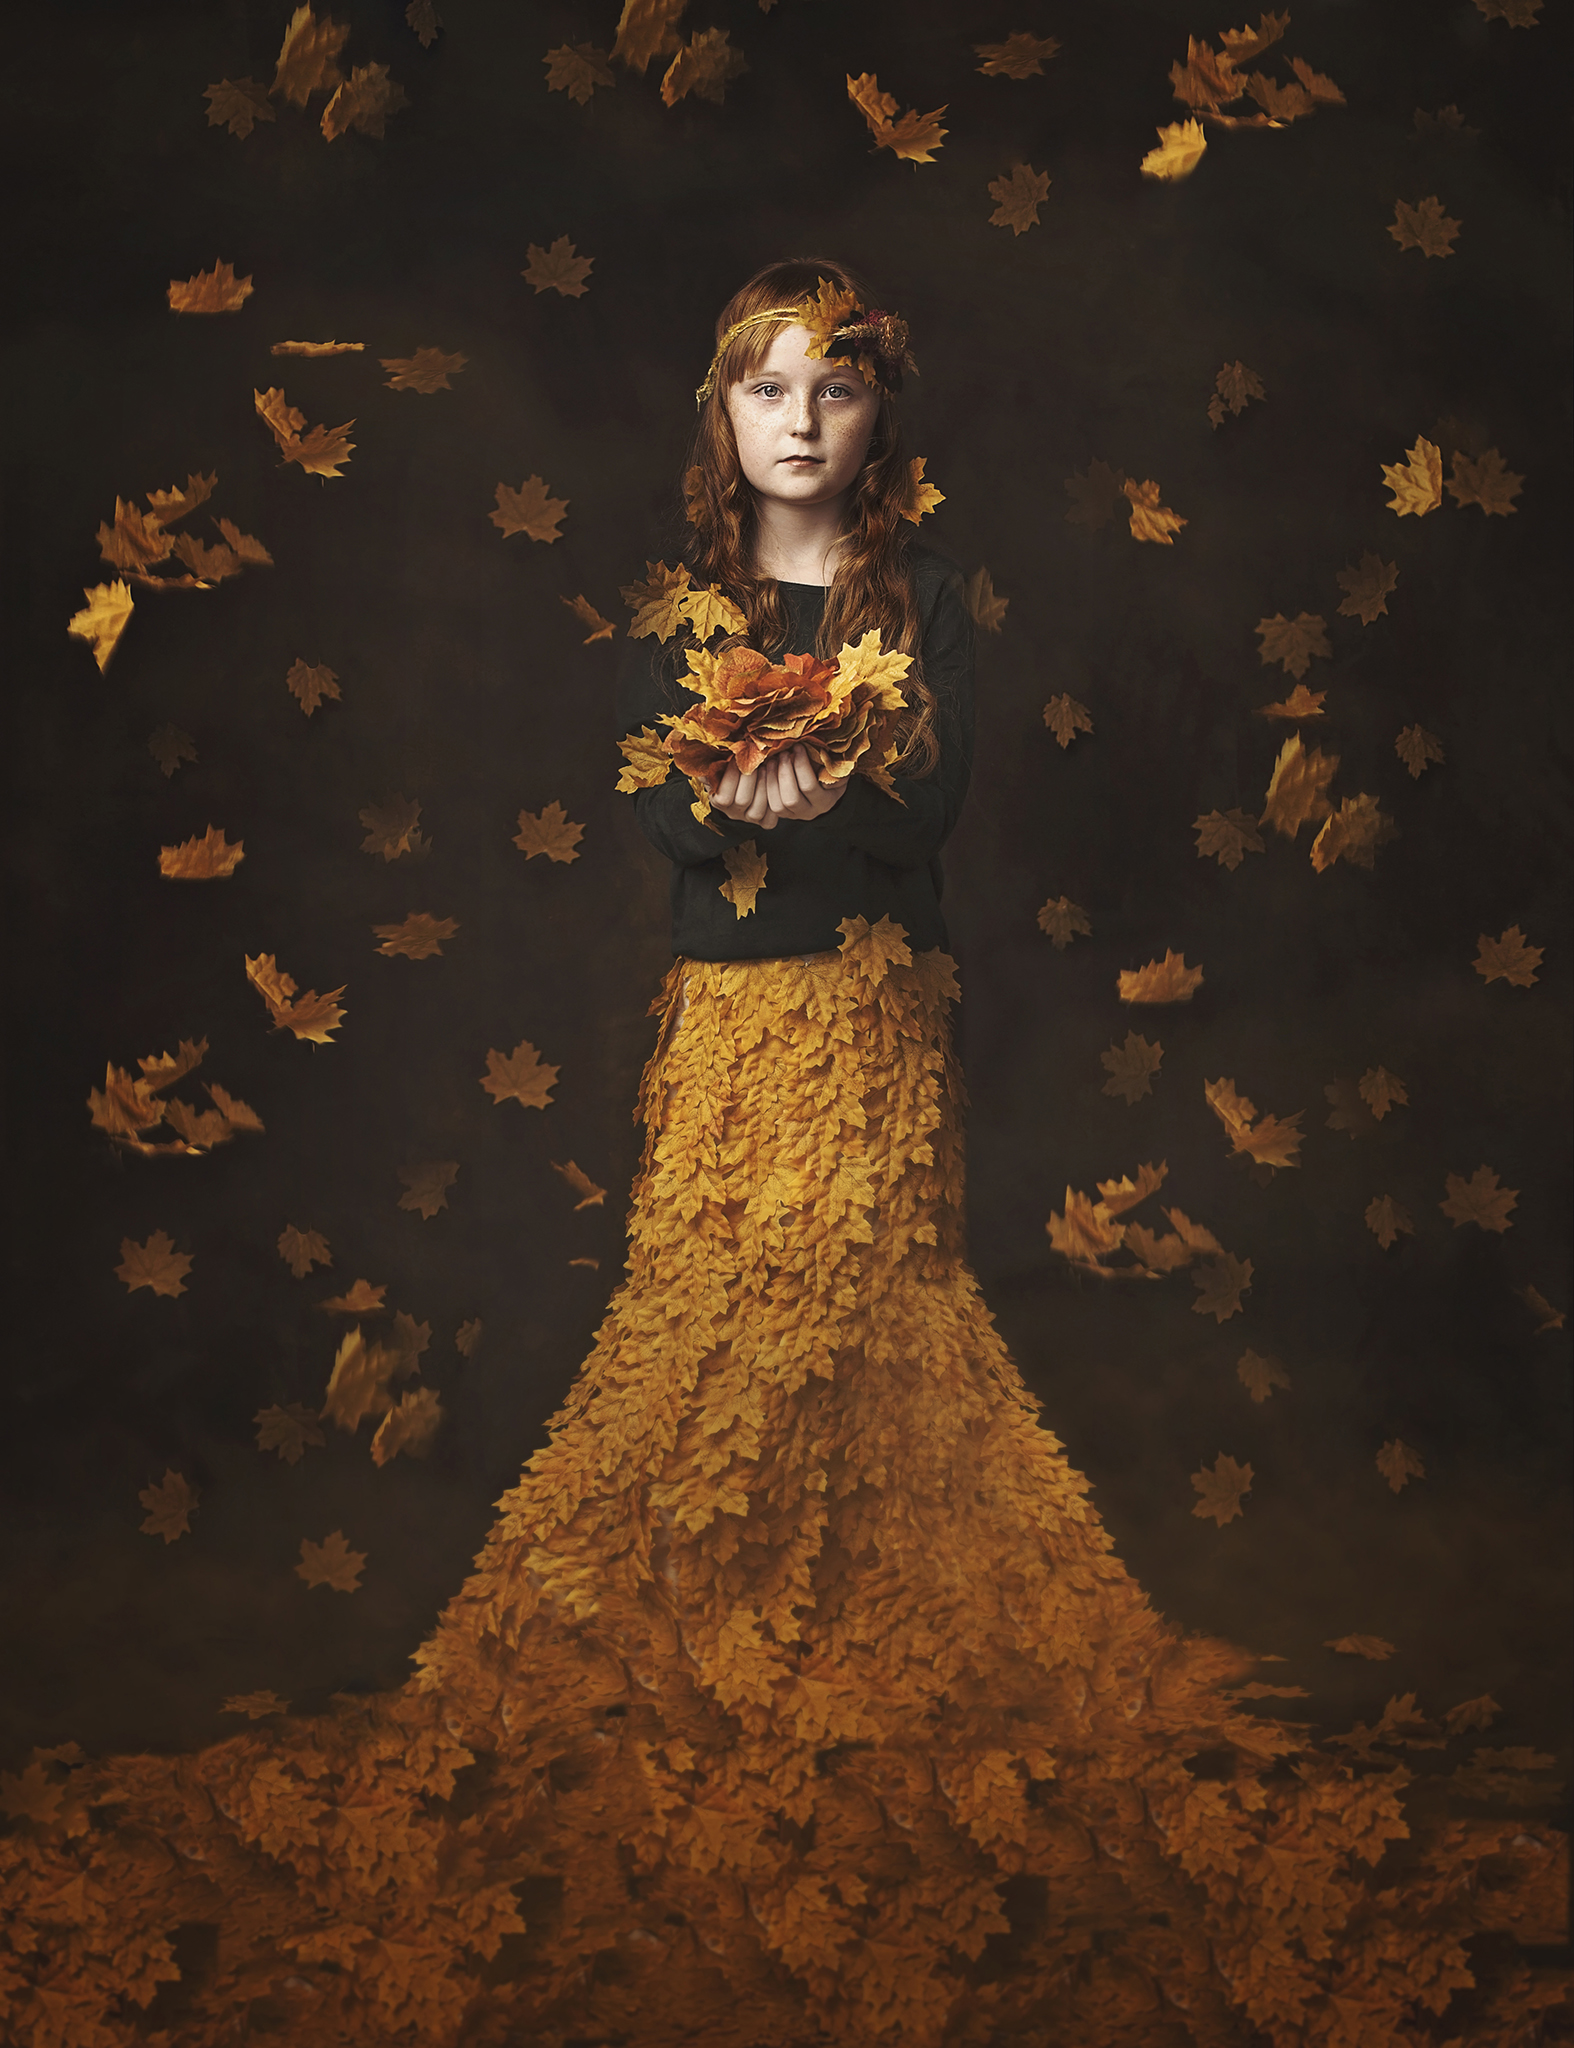 Fine art photography workshop girl in autumn dress with leaves